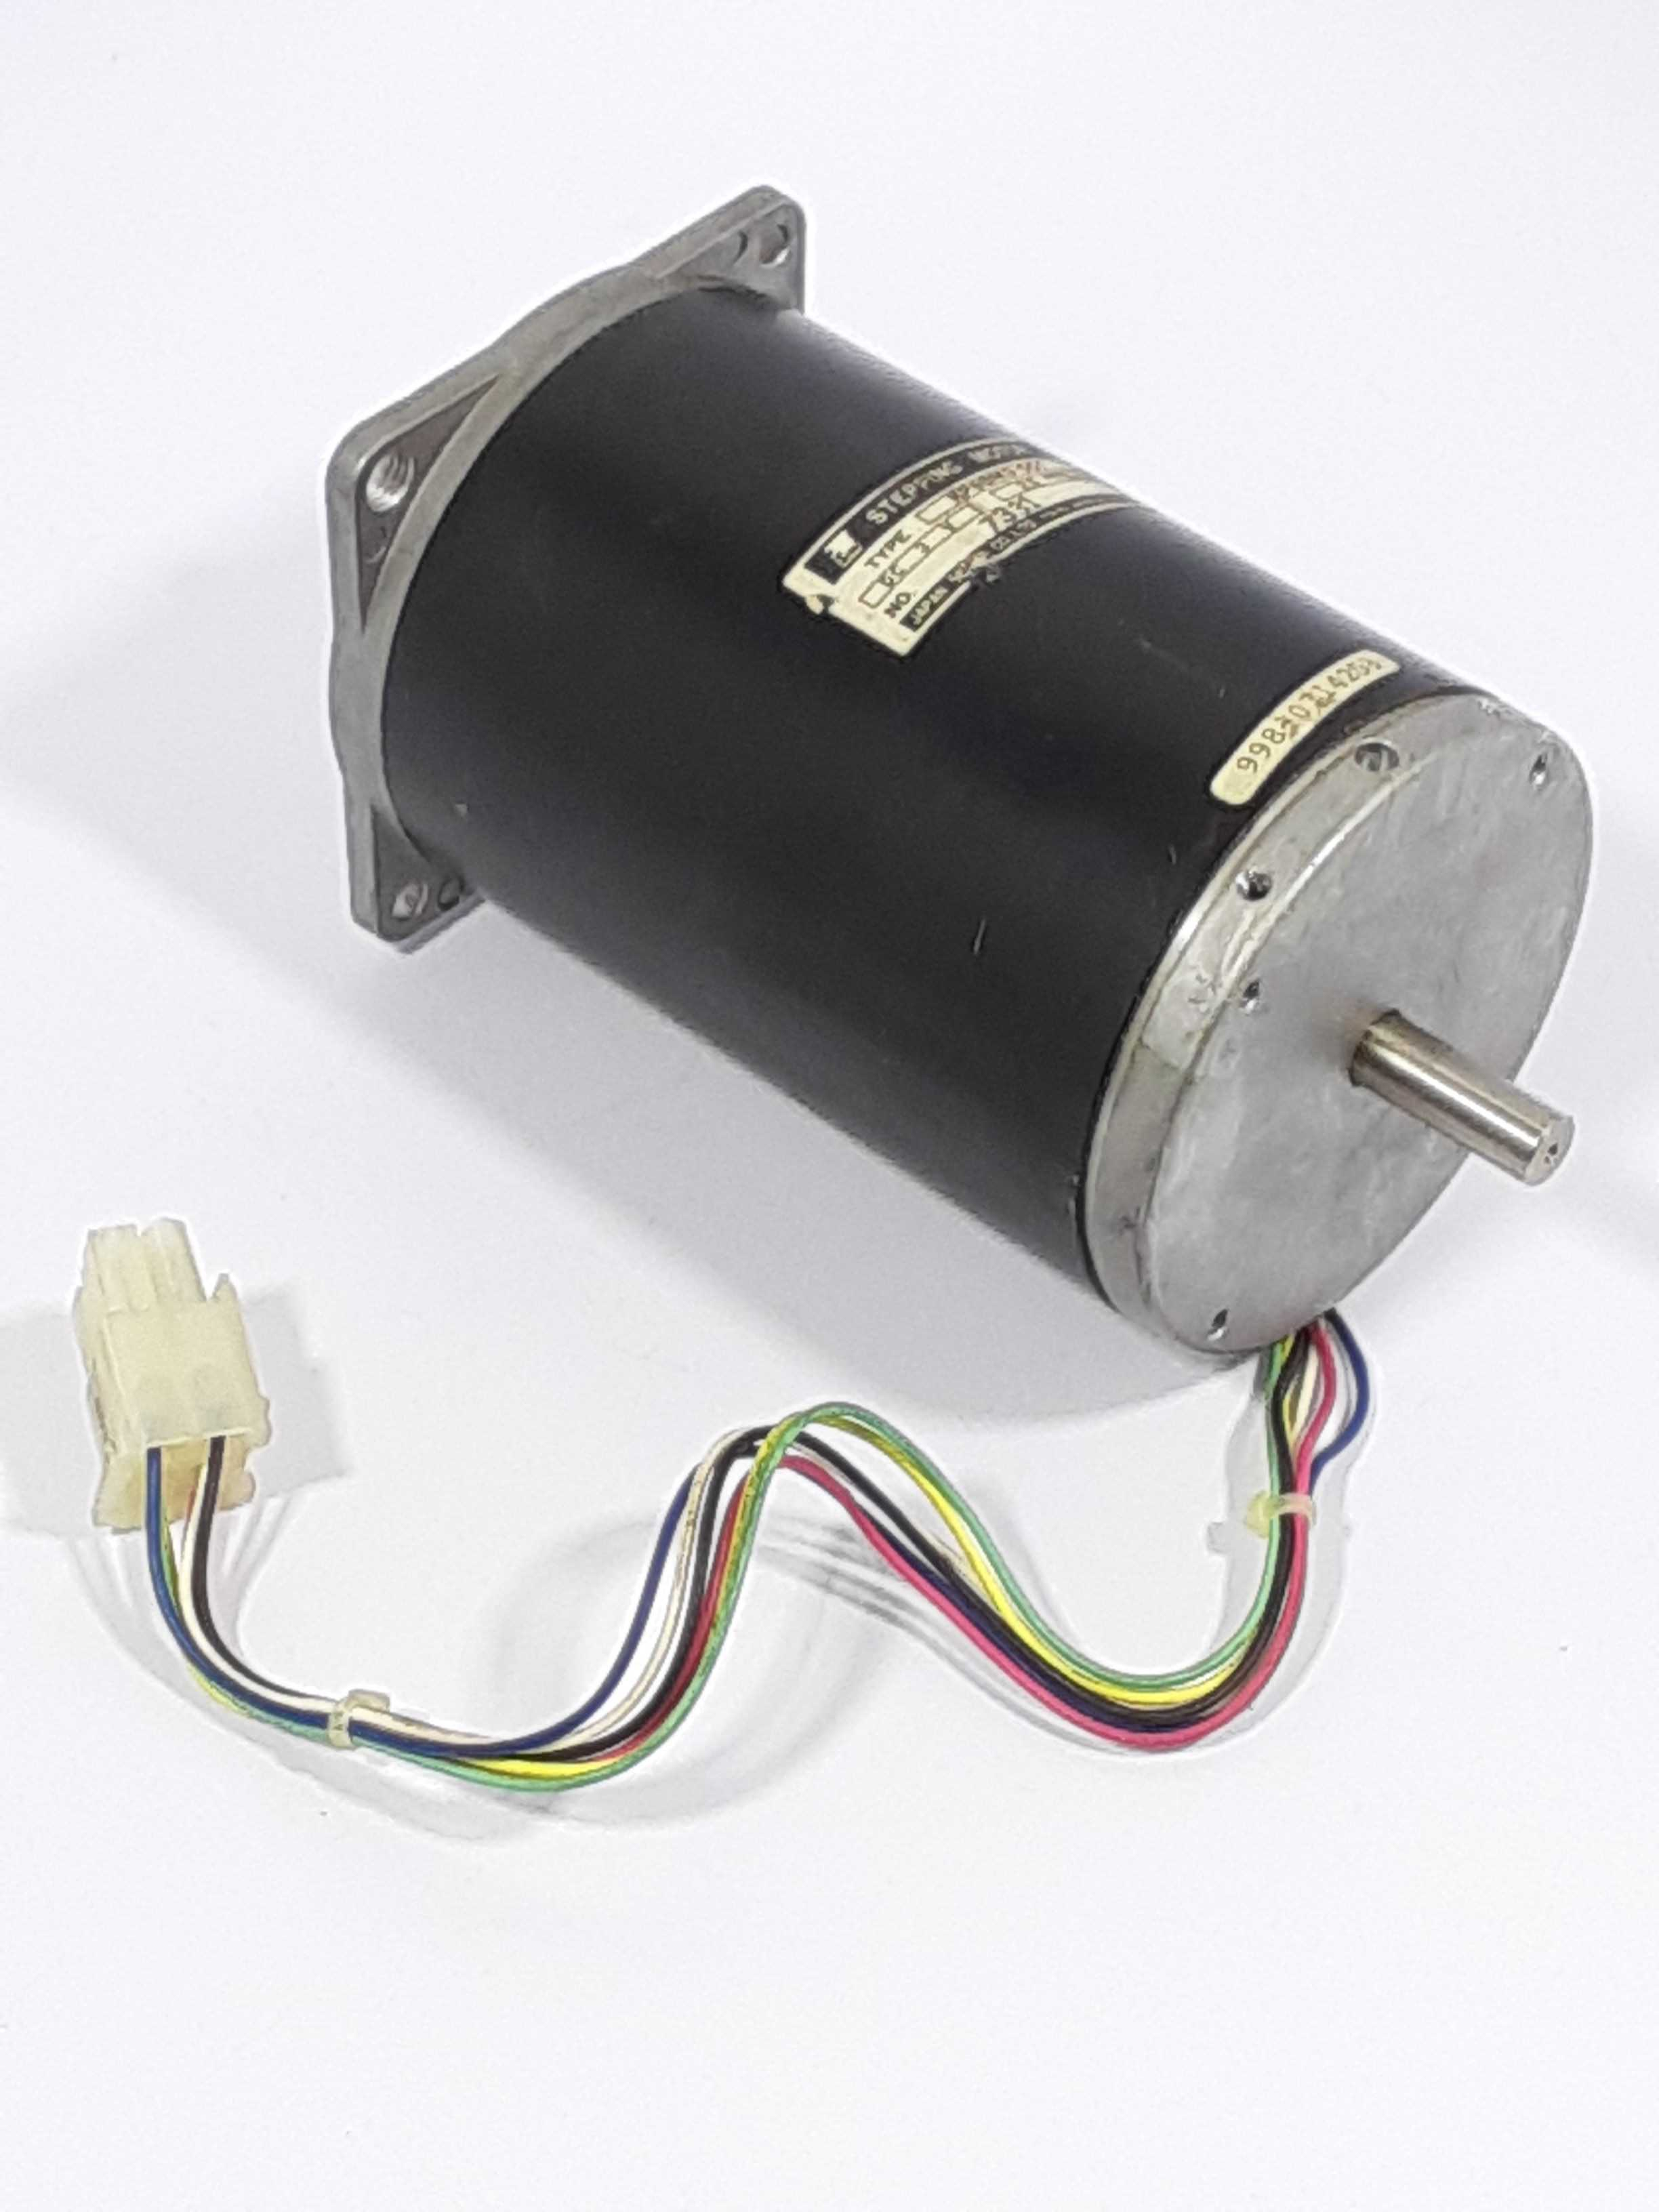 Japan Servo Co. Ltd. KP8BM3-001 Stepping Motor